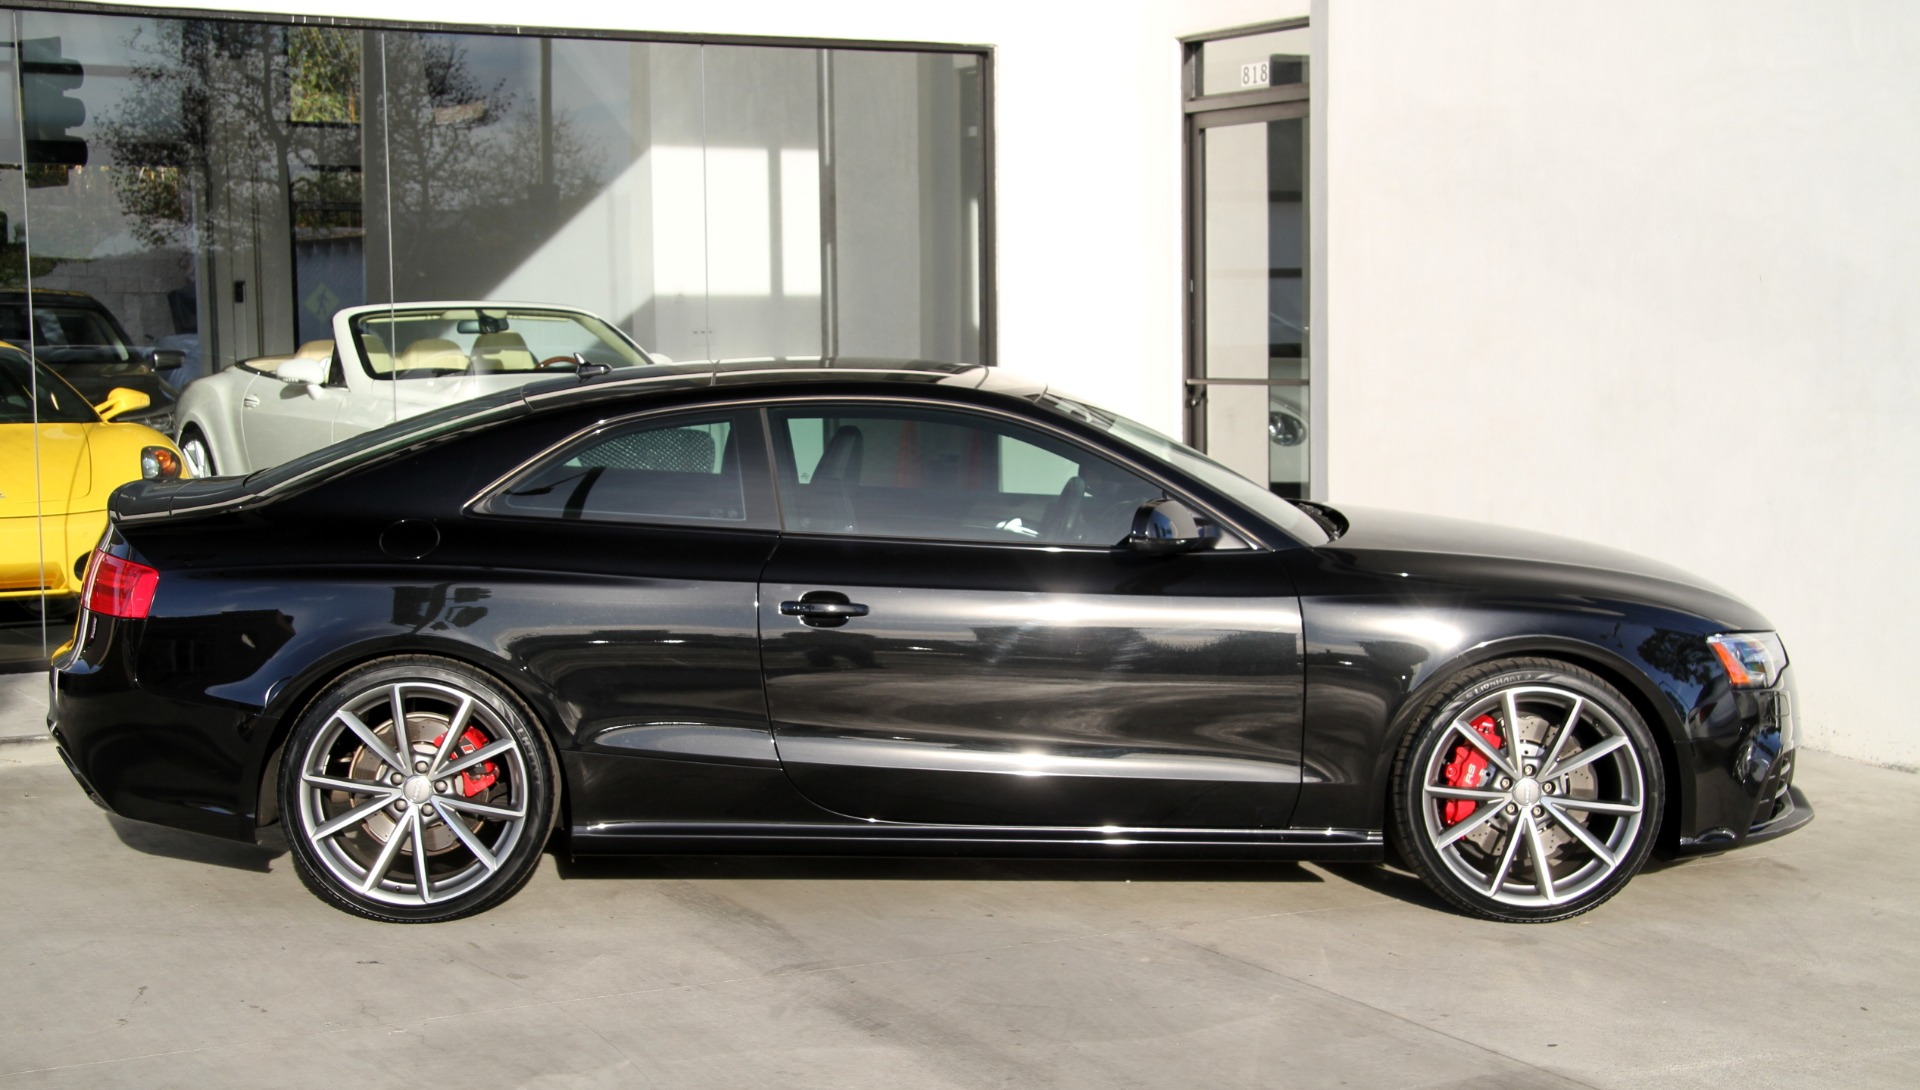 Audi Dealership Near Me >> 2015 Audi RS 5 4.2 quattro Stock # 900956 for sale near ...